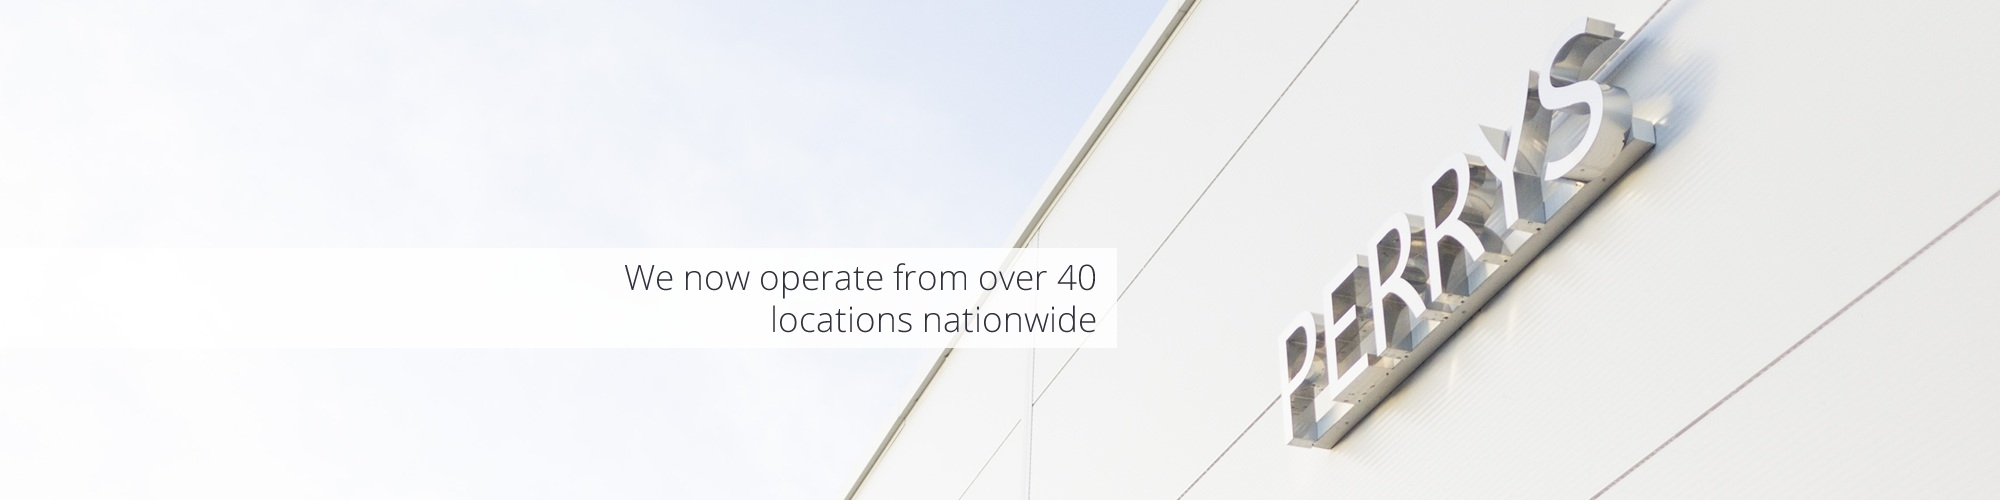 Perrys operates from over 40 locations nationwide